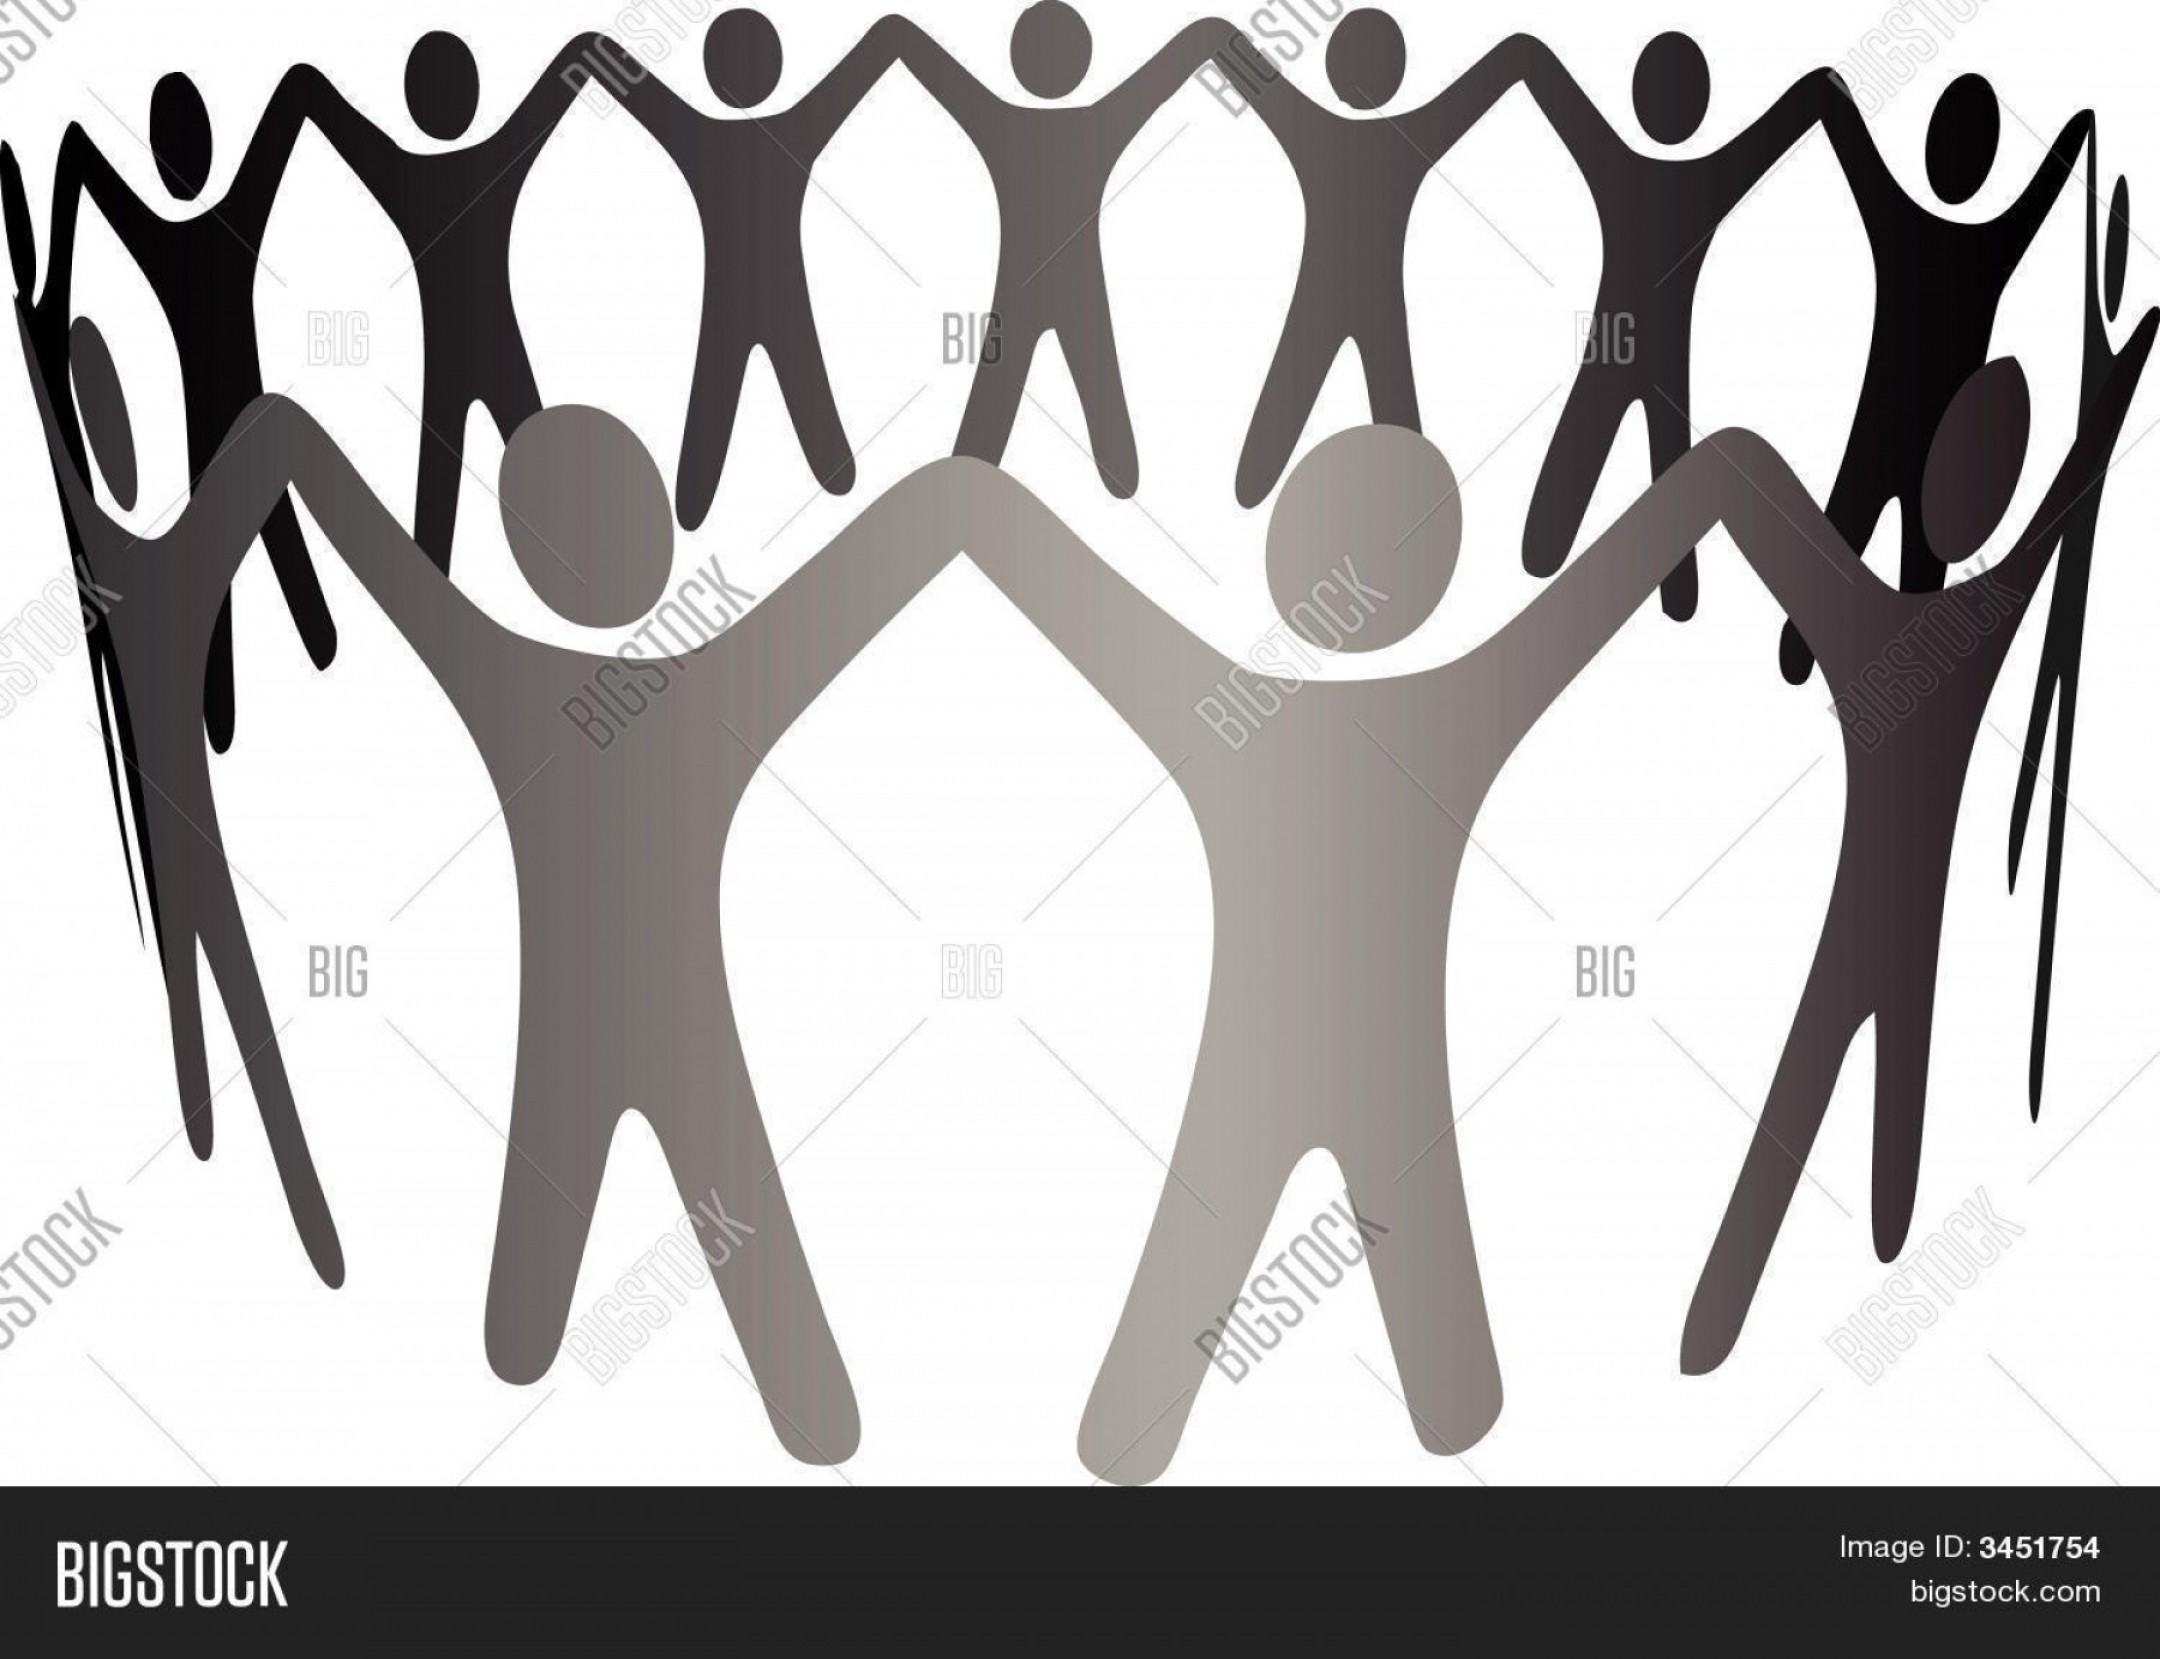 Holding Hands Up Silhouette Vector: Stock Vector Group Symbol People Hold Hands Arms Up In Circle Ring Chain Eps